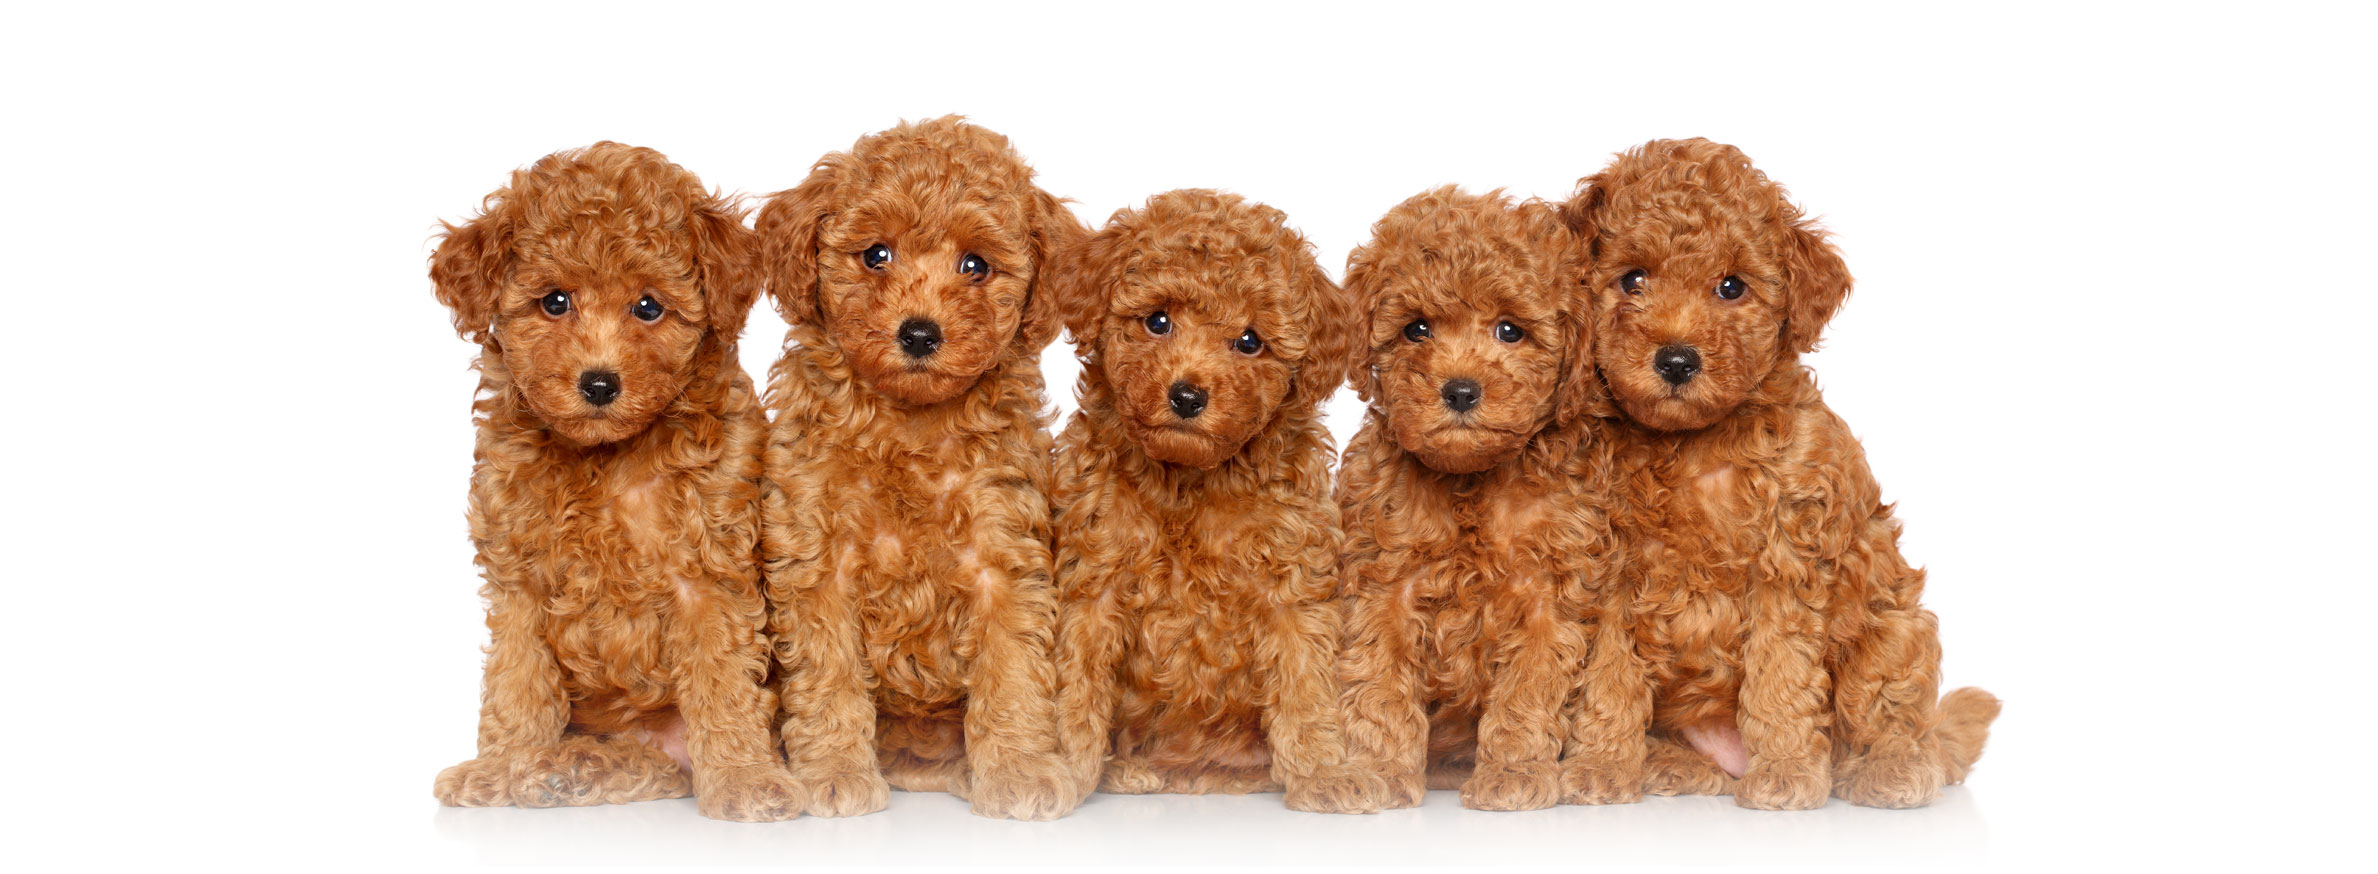 Poodle Breeders Puppies For Sale In Austin Texas Tx